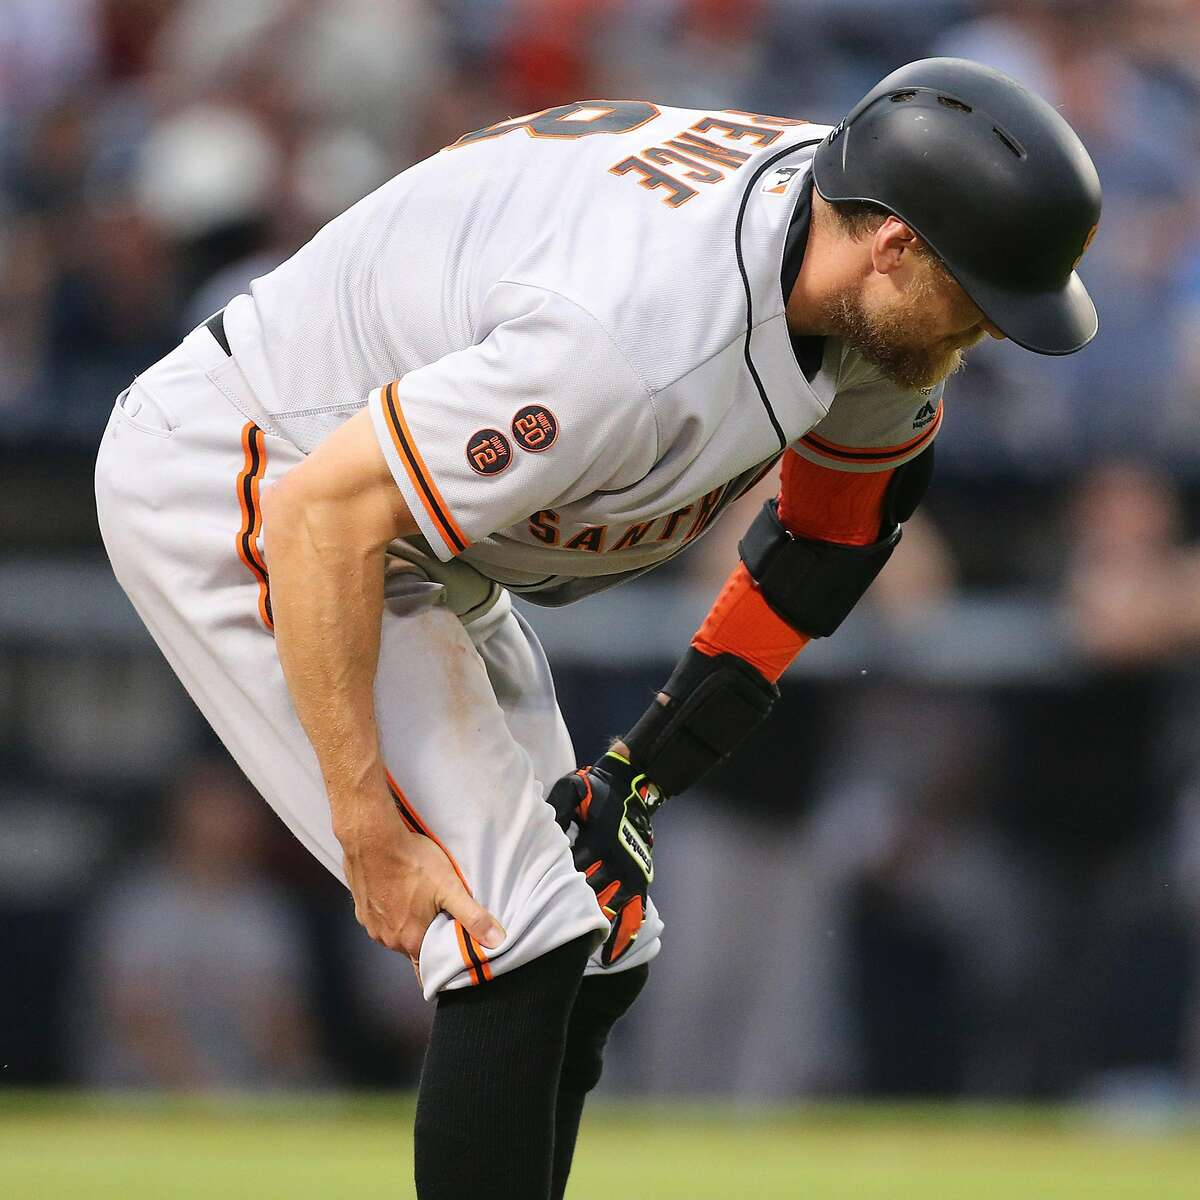 The San Francisco Giants' Hunter Pence grabs his leg, pulling up short of first base during the fourth inning against the Atlanta Braves at Turner Field in Atlanta on Wednesday, June 1, 2016. (Curtis Compton/Atlanta Journal-Constitution/TNS)